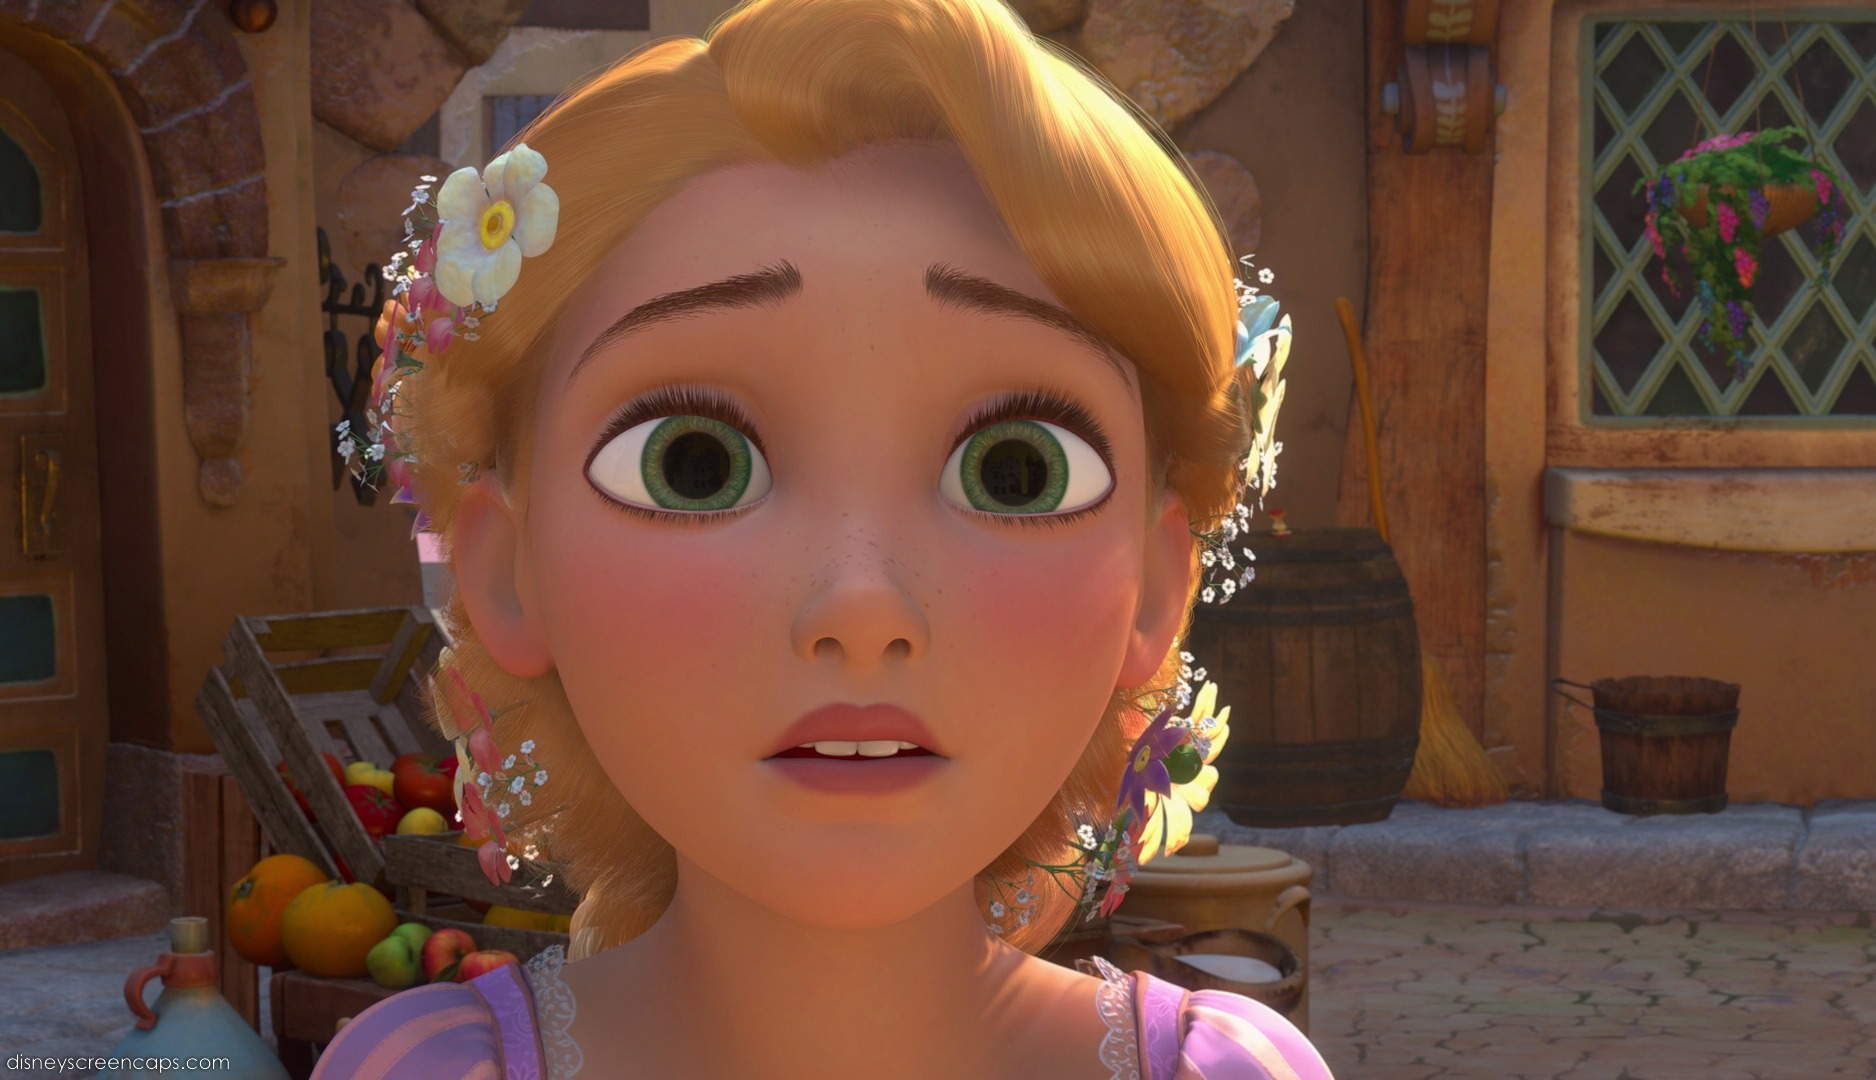 Hair color not hair style poll results disney princess fanpop - Which Princess Do You Think Has The Best Blue Purple Green Eye Color Poll Results Disney Princess Fanpop